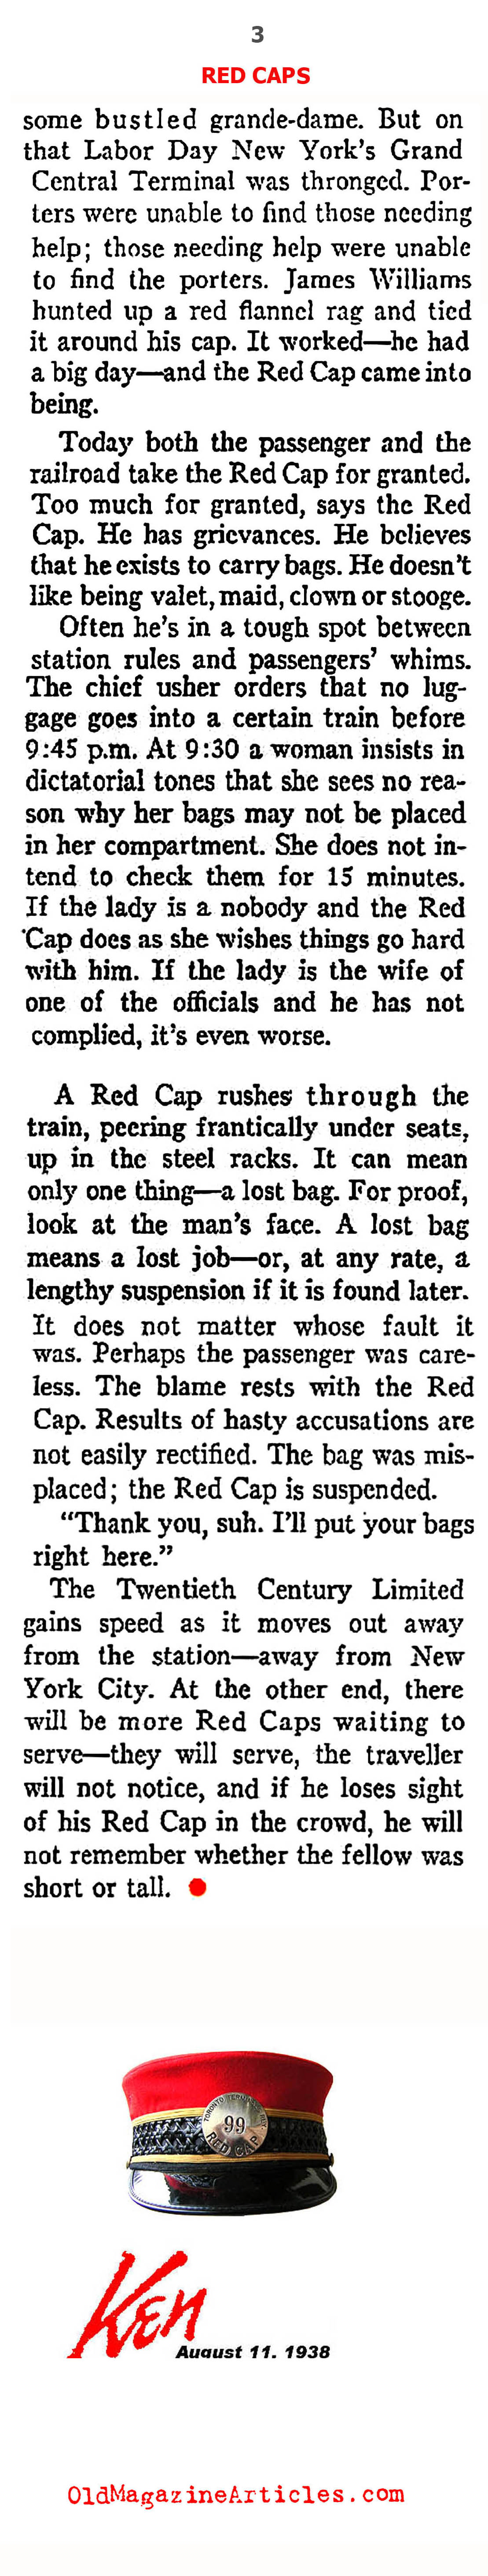 The Red Caps (Ken Magazine, 1938)